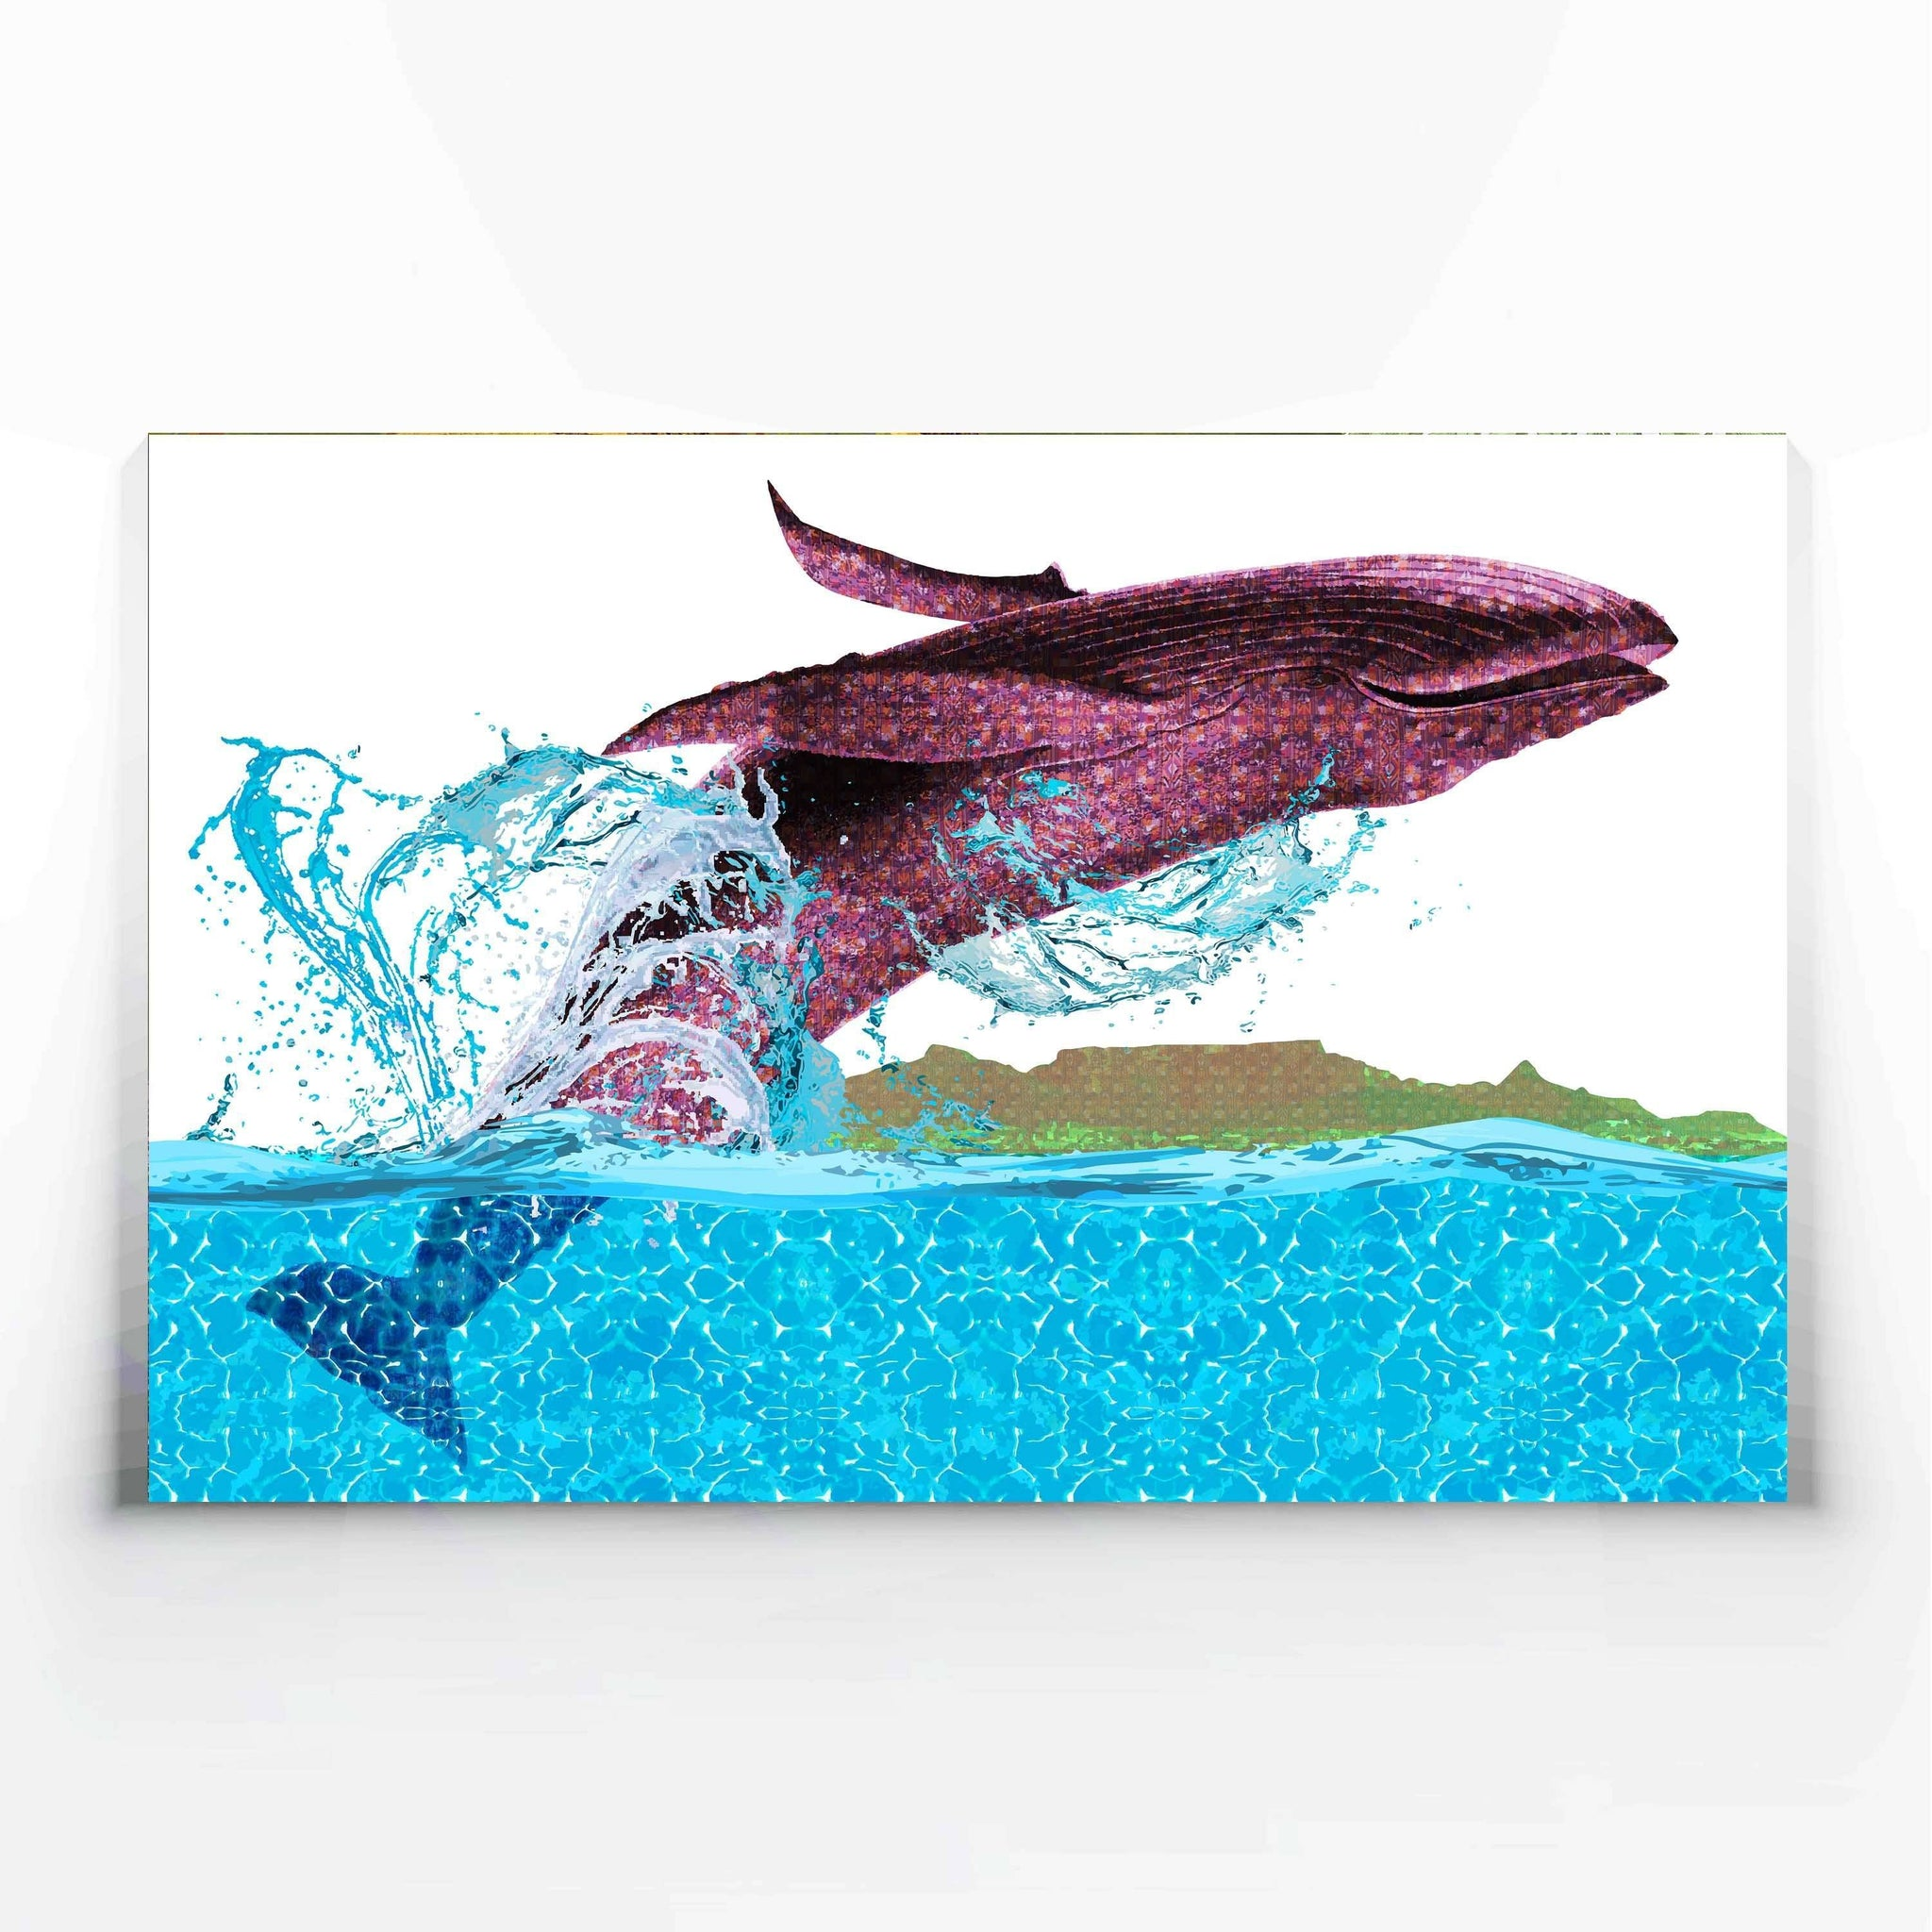 Leaping Whale Canvas Print-Canvas Prints-Tony Pinchuck-Large (130 x 80 cm/ 52 x 32 in)-Tony Pinchuck